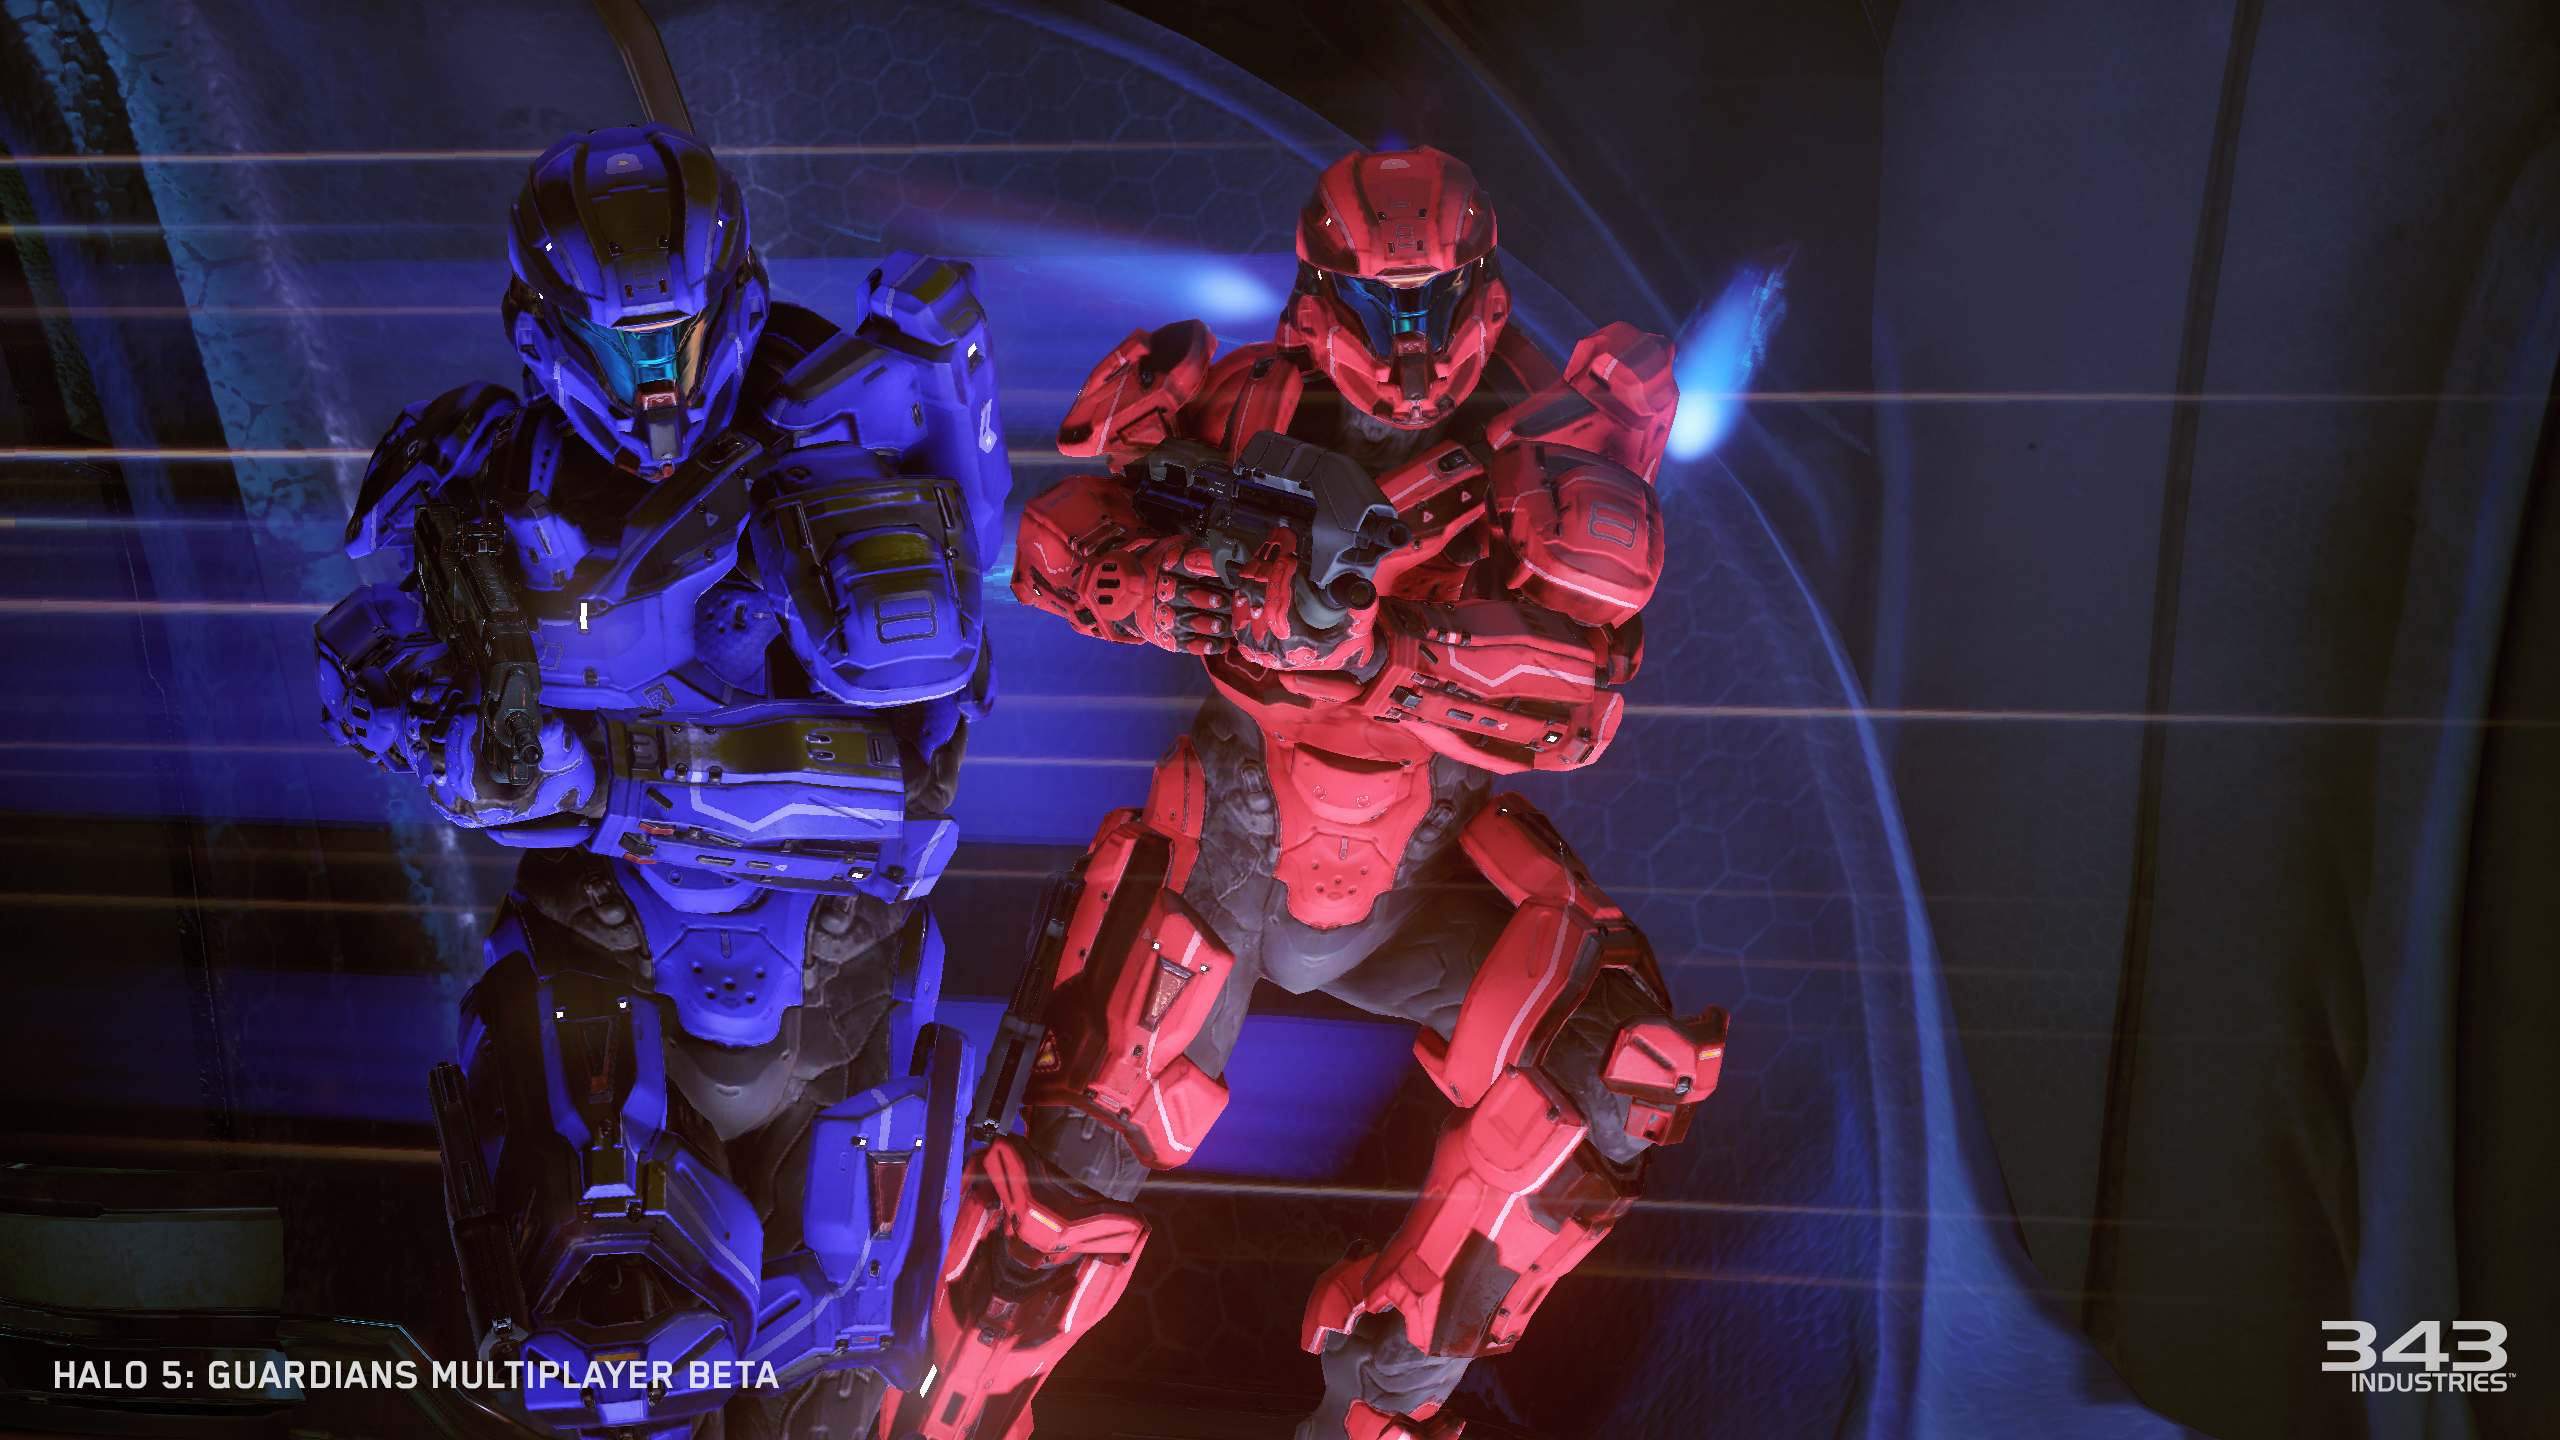 First Look Halo 5 Guardians Multiplayer Beta Video